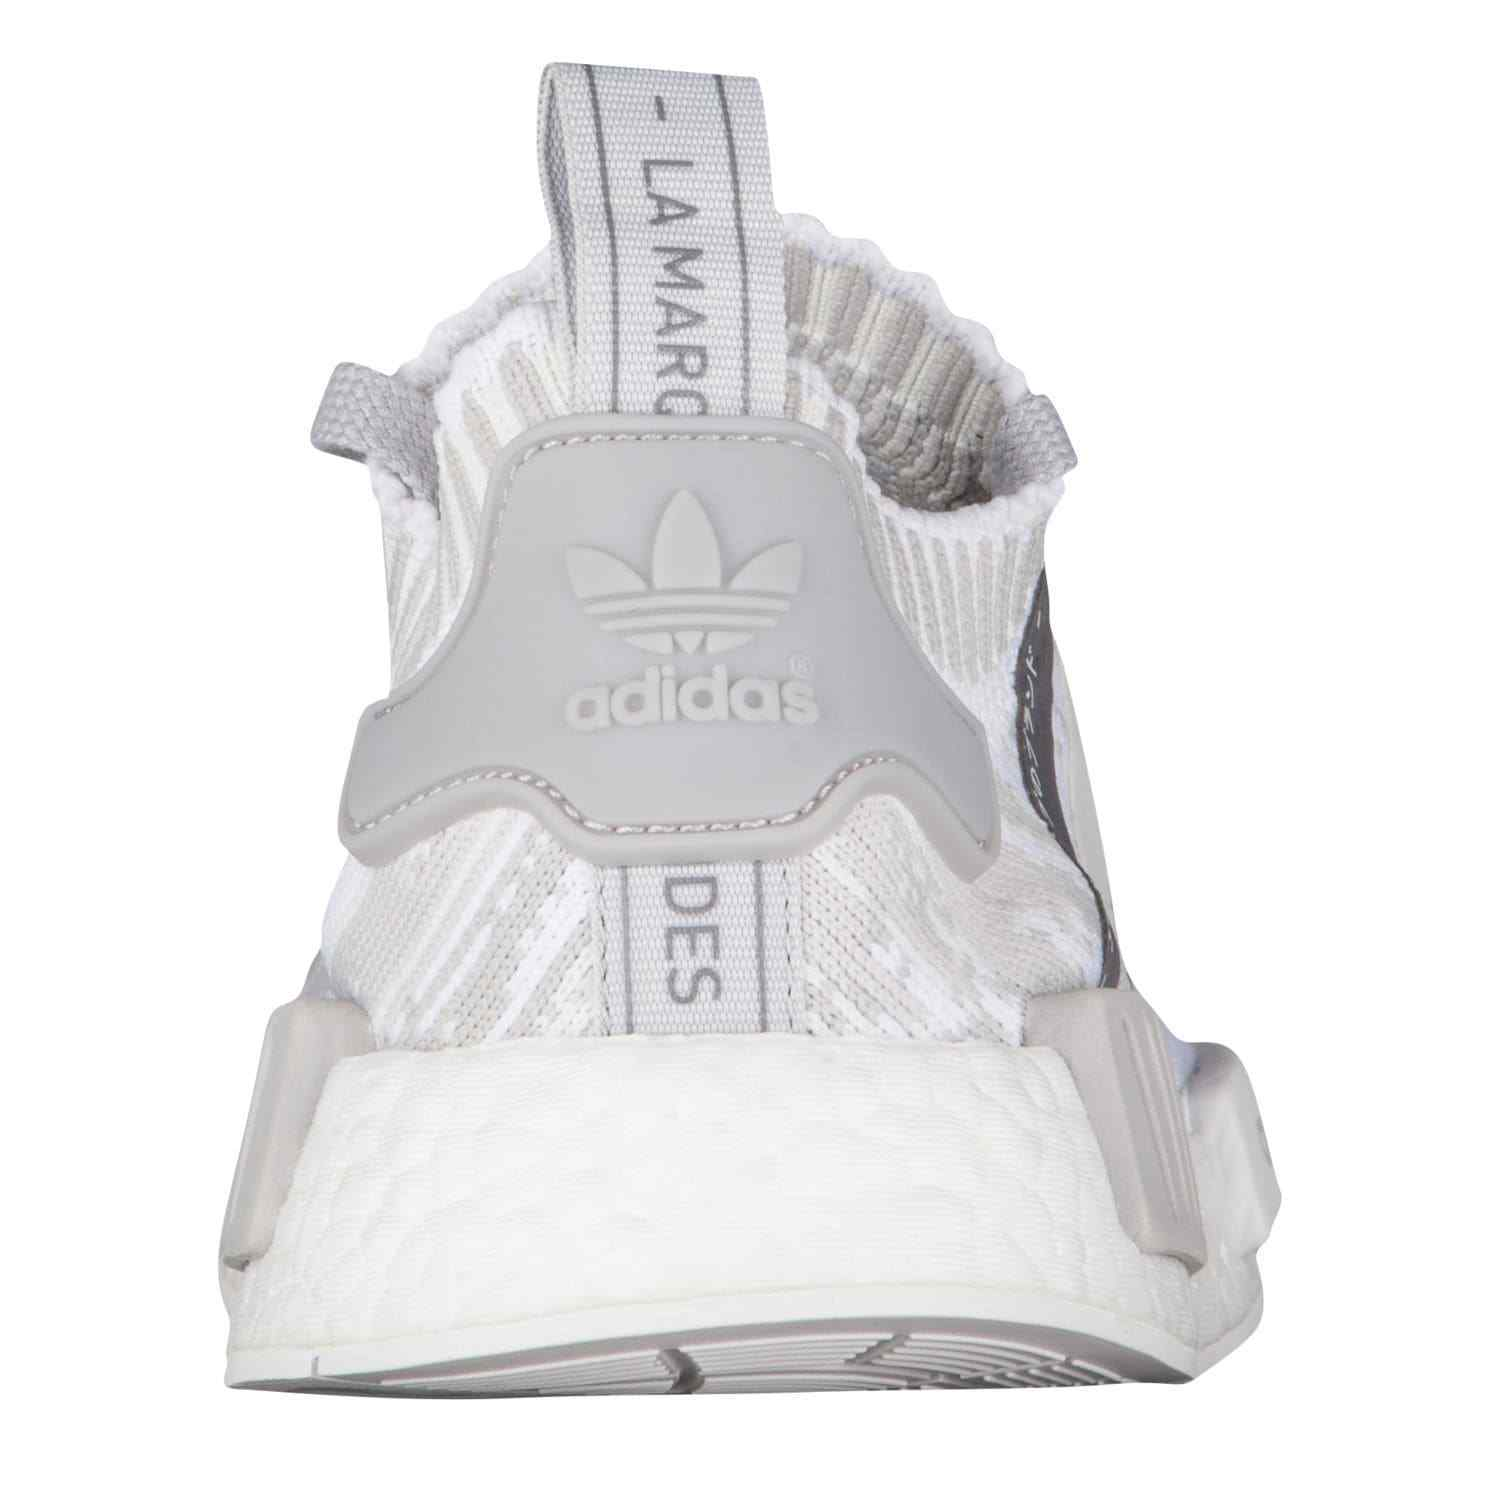 buy popular 759e5 33276 NEW ADIDAS NMD R1 W PK AVAILABLE IN ONLY SIZE 9.5 BY9865 ...